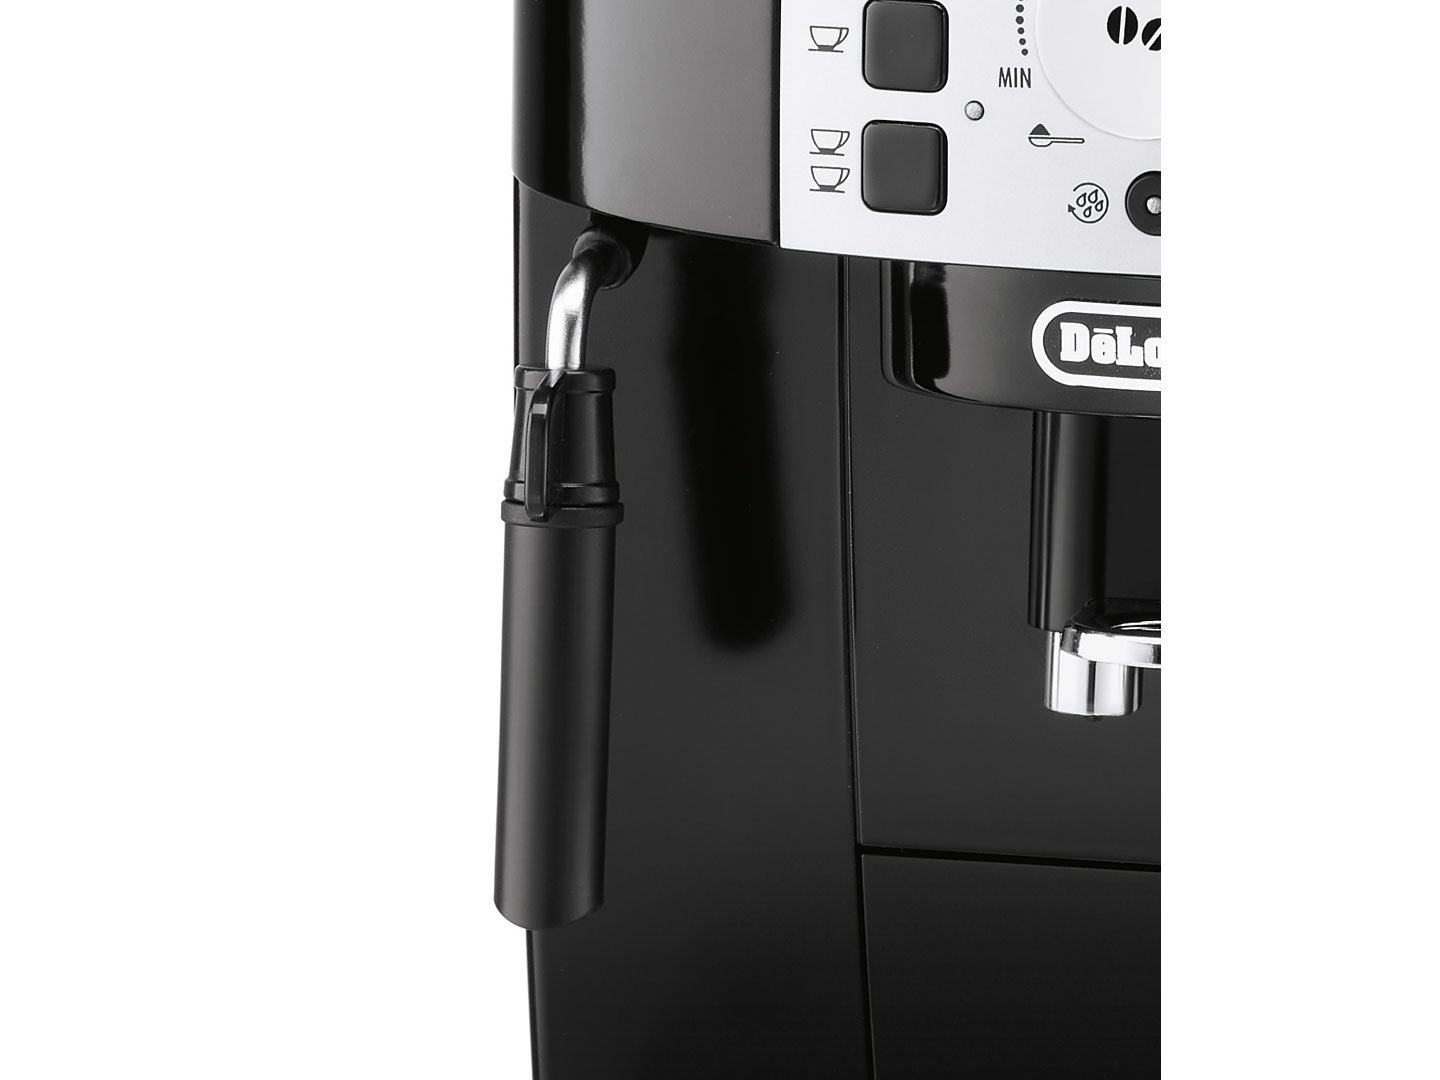 8004399325050-1 | Автоматическая кофемашина DeLonghi Magnifica S ECAM 22.110.B | Coffee Shop